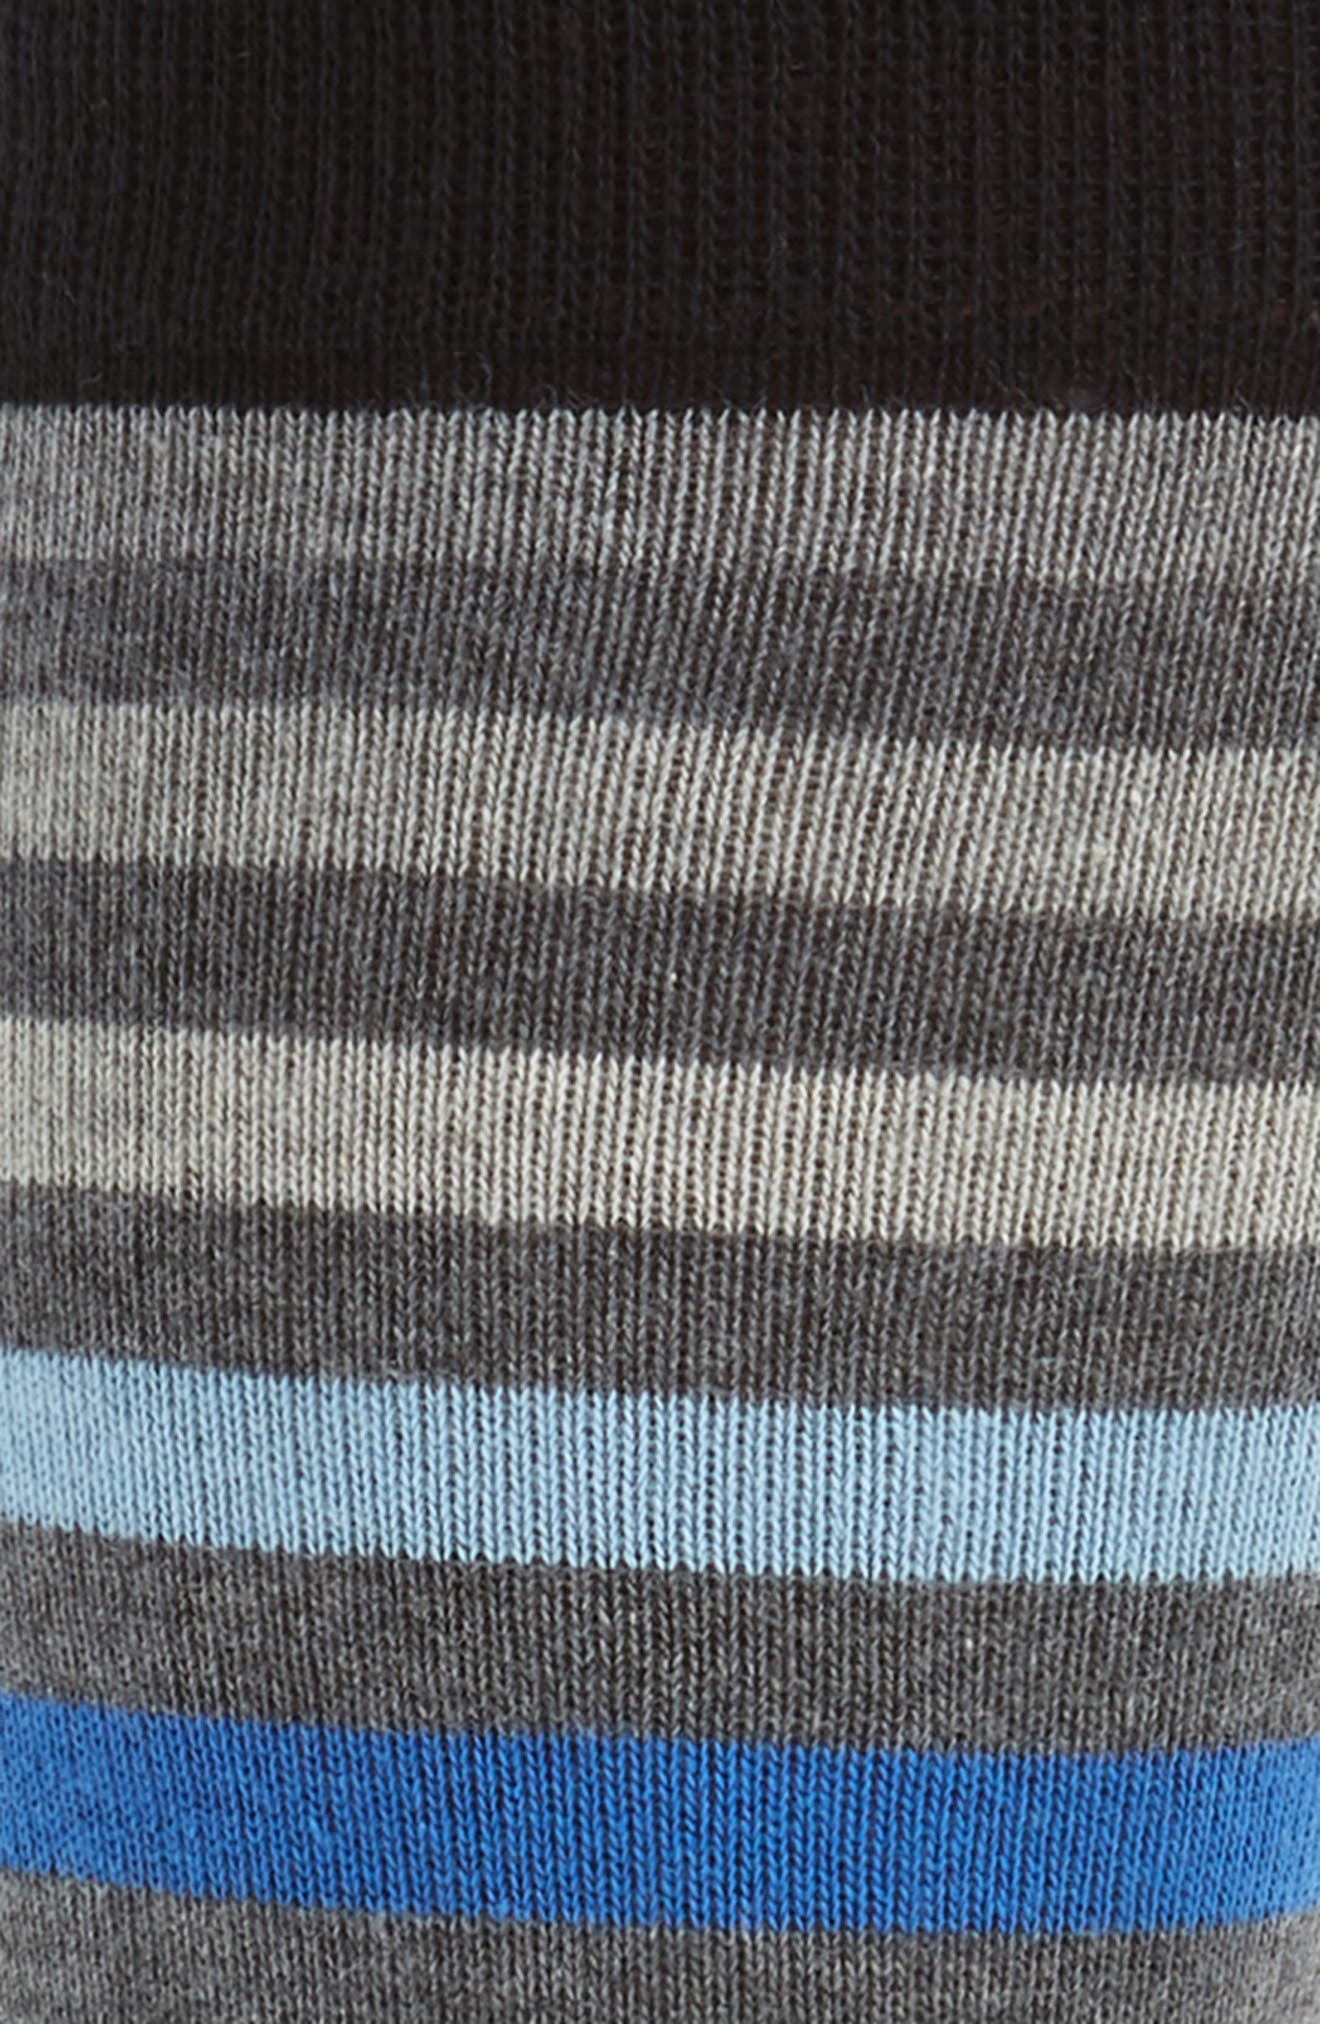 Alternate Image 2  - Calibrate Heather Stripe Socks (3 for $30)